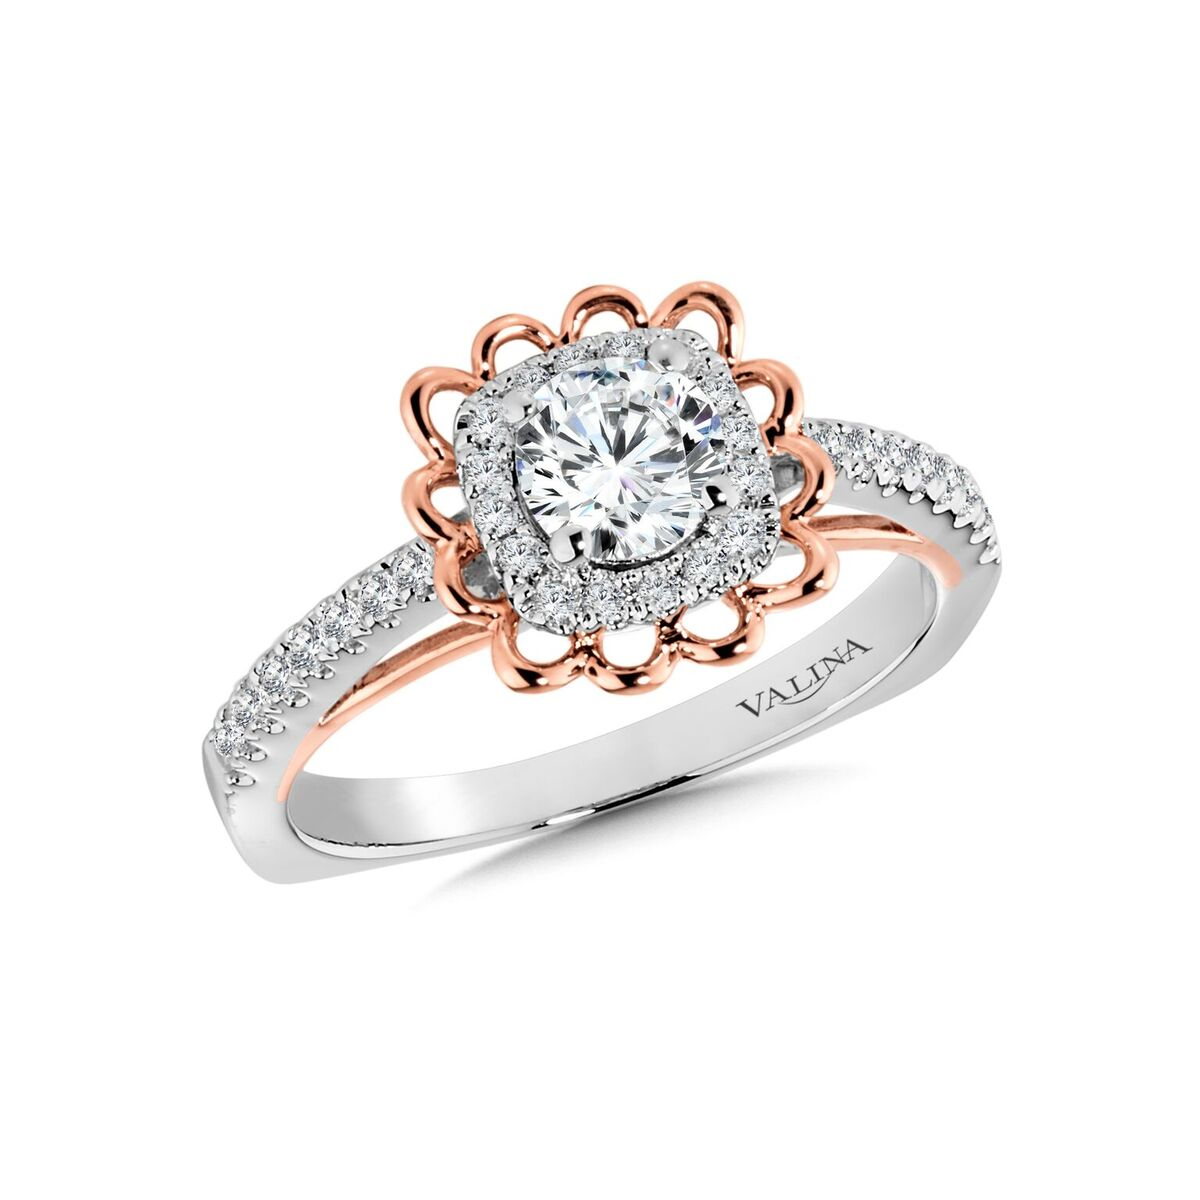 Custom Diamond Engagement Rings In Dallas Texas Wholesale Diamonds And Custom Diamond Rings In Dallas Texas , Shira Diamonds